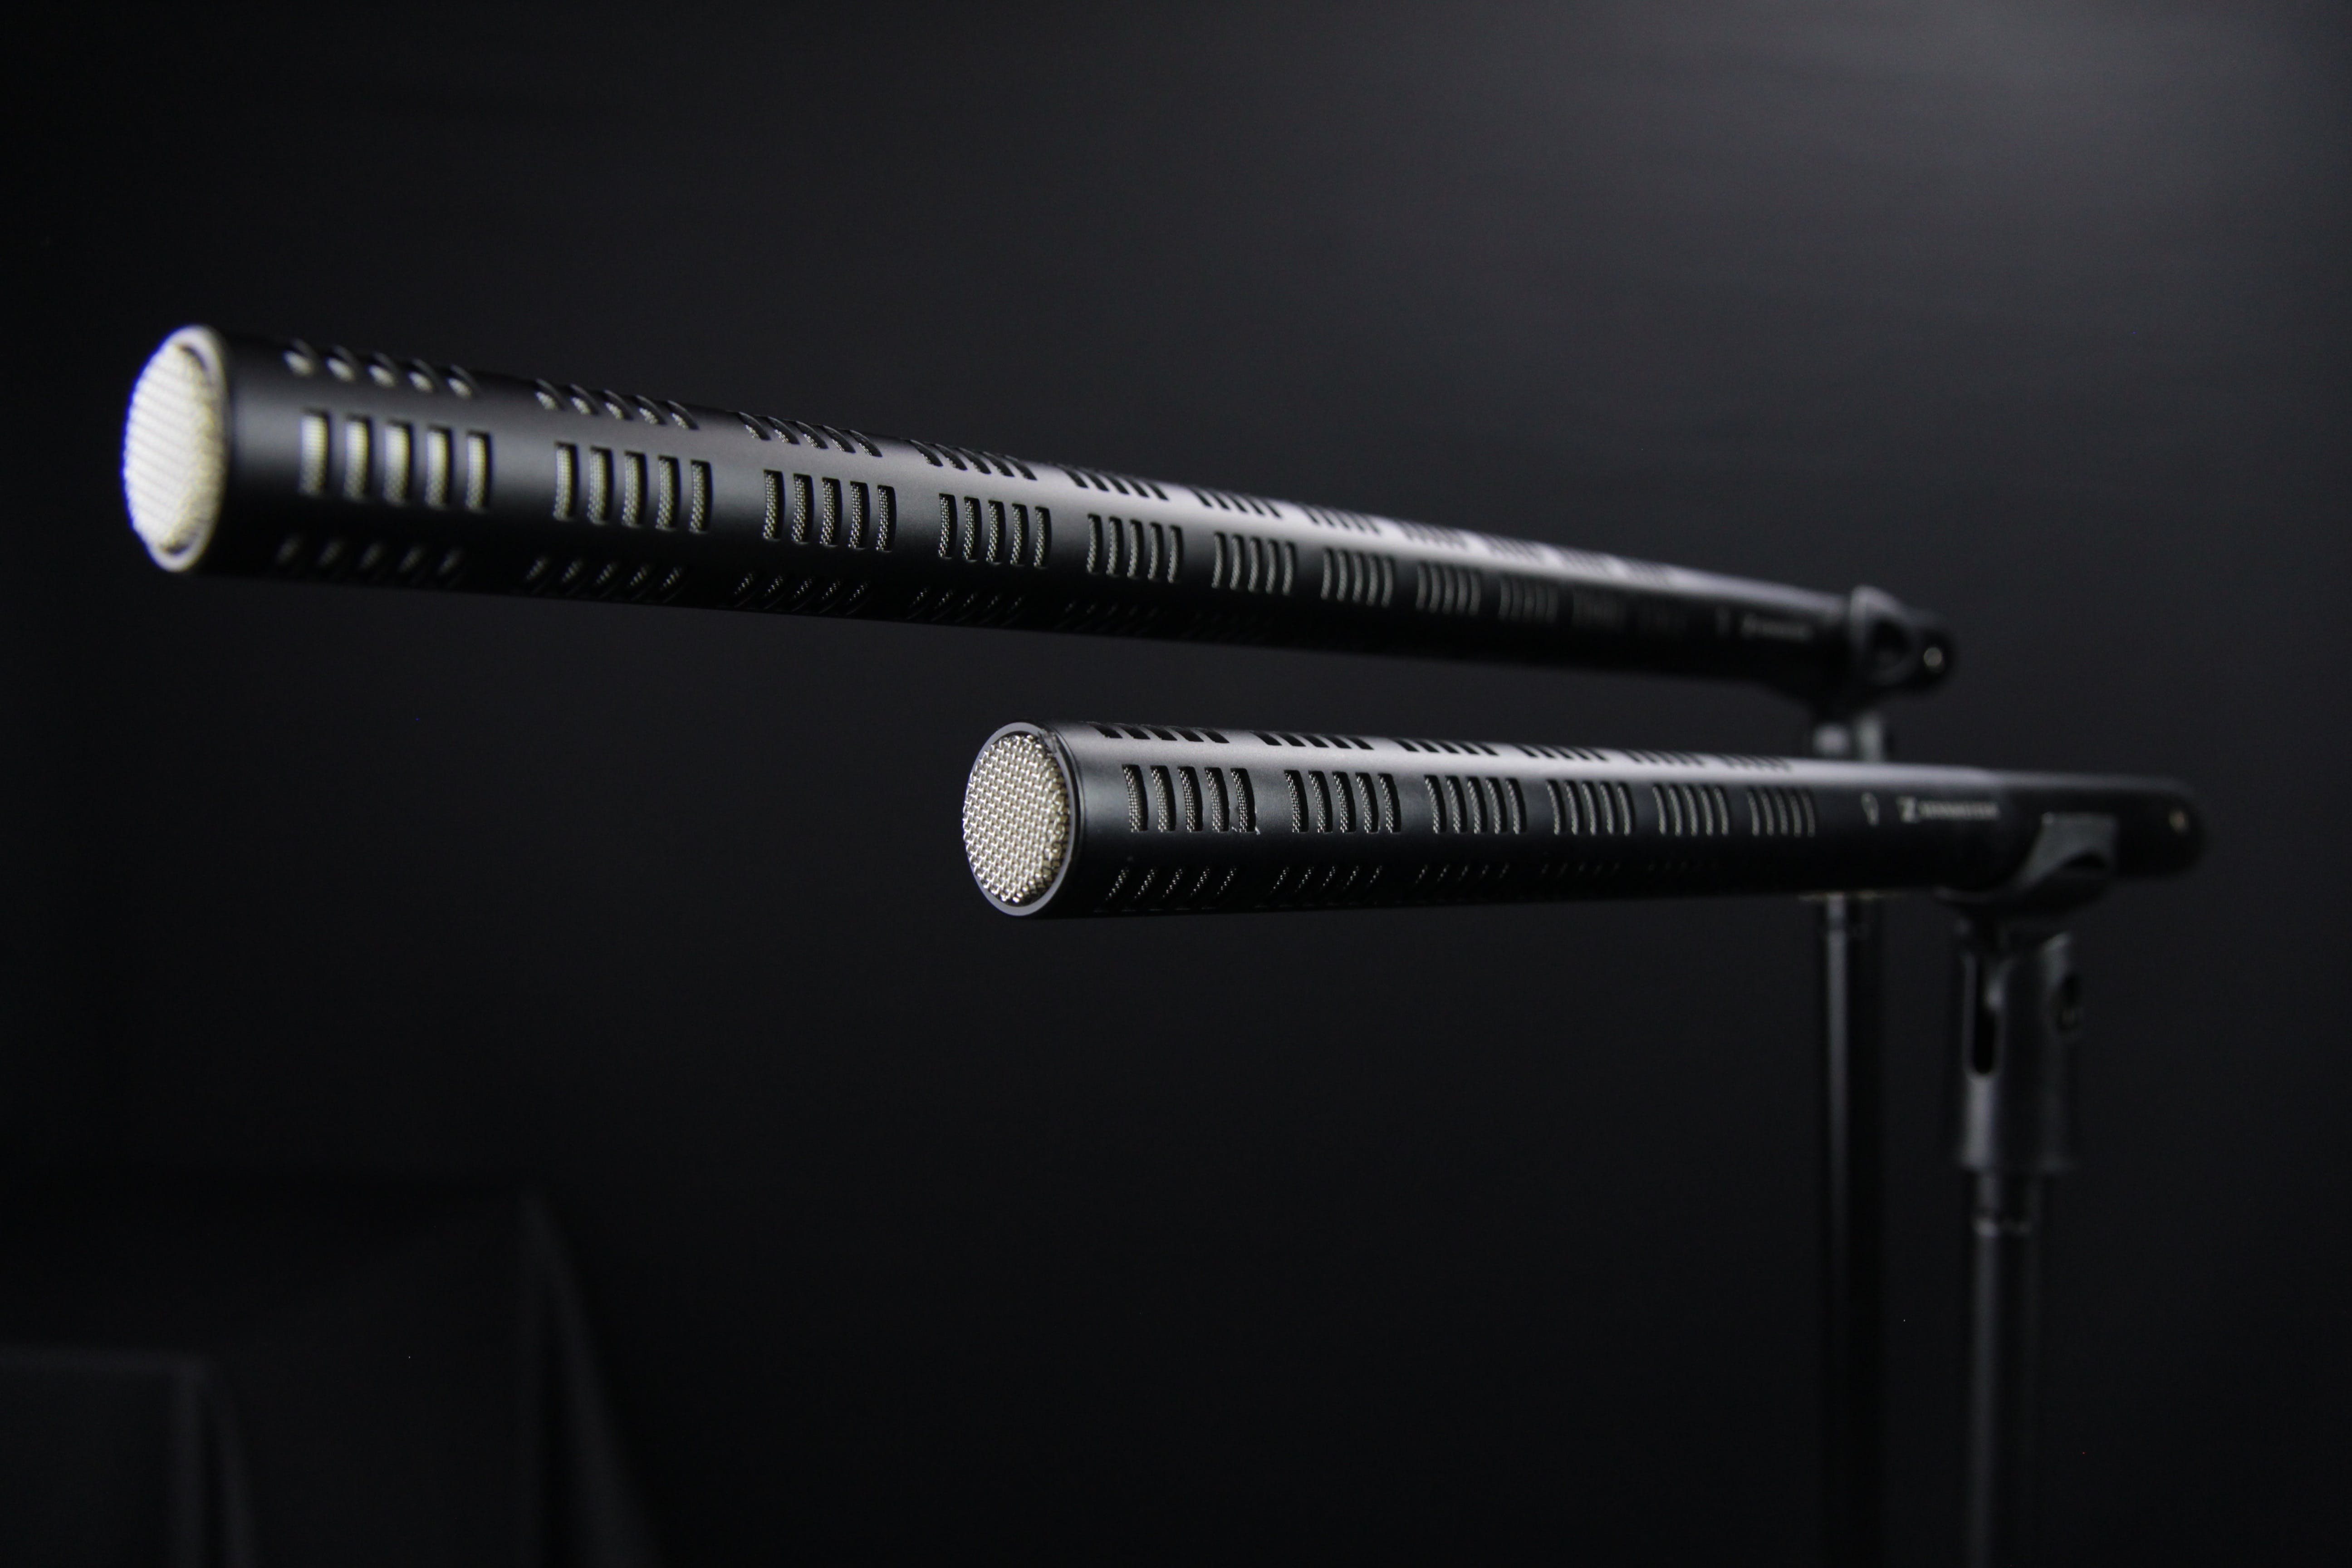 Two Metal Rods Grayscale Photo